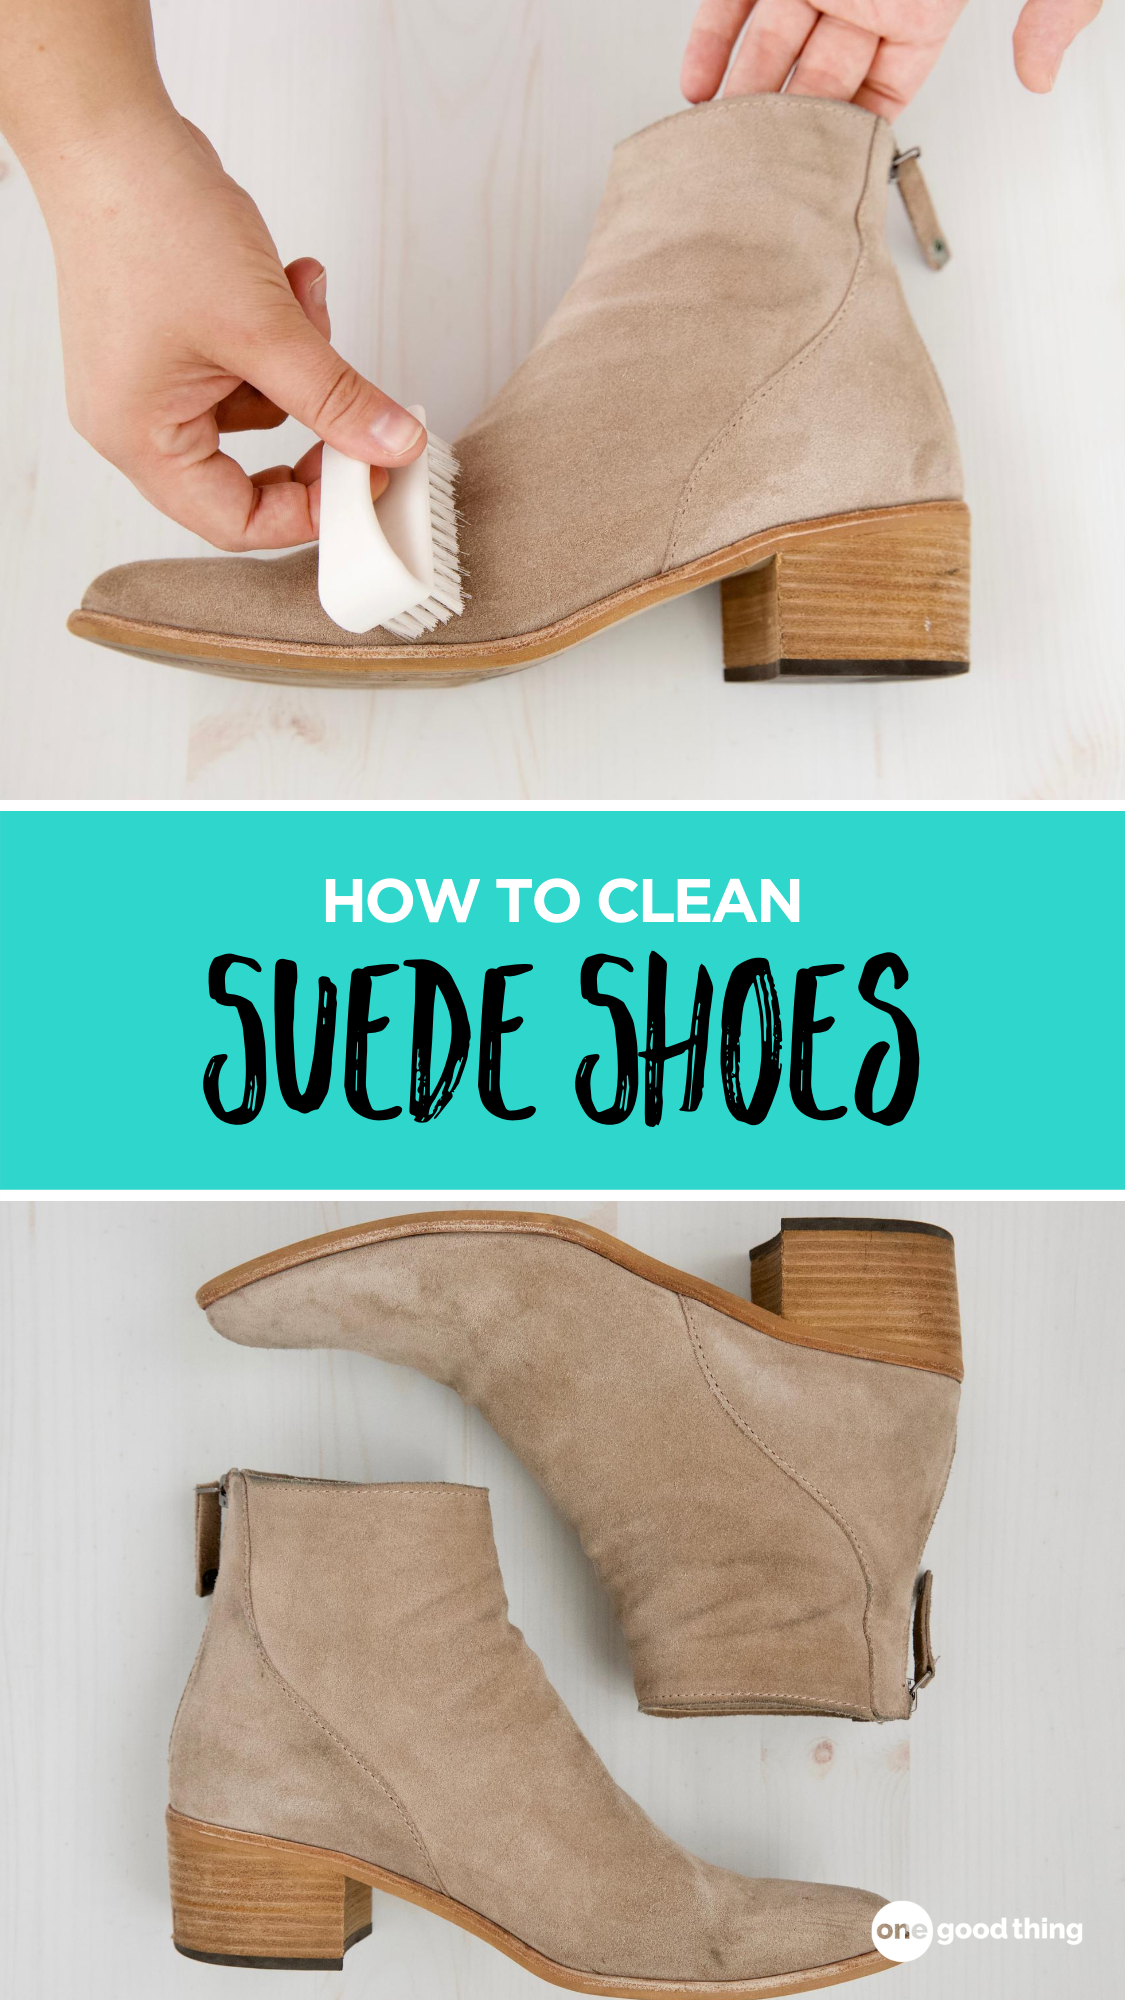 Can You Wash Suede Shoes With Soap And Water How To Clean Suede Shoes The Easy Way One Good Thing By Jillee In 2020 How To Clean Suede Clean Suede Shoes Suede Shoes